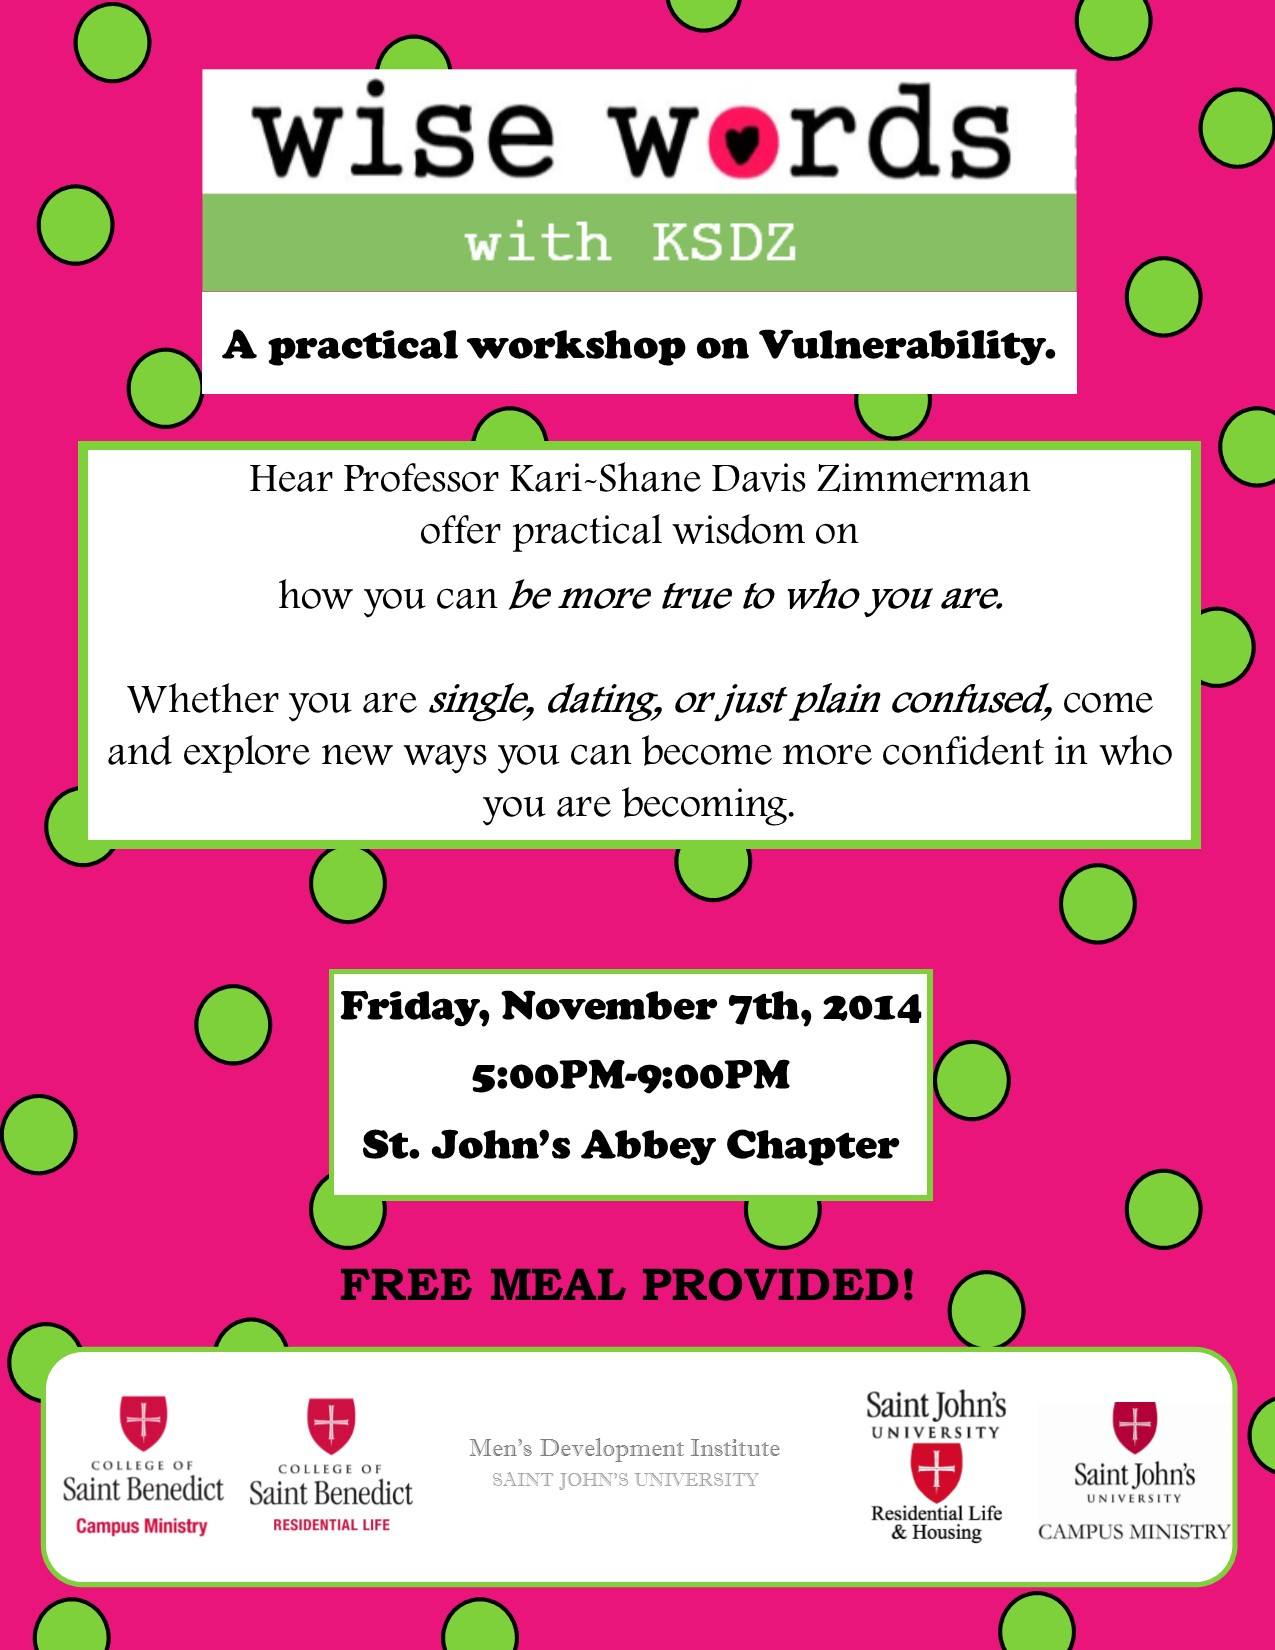 Wise Words with KSDZ. A practical workshop on Vulnerability. Hear Professor Kari Shane Davis Zimmerman offer practical wisdom on how you can be more true to who you are. Whether single, dating, or just plain confused, come and explore new ways you can become more confident in who you are becoming. Friday, November 7th, 2014. 5:00PM to 9:00PM. St. John's Abbey Chapter House. Free Meal Provided! Register here! This event is cosponsored by The College of St. Benedict Campus Ministry, The College of St. Benedict Residential Life, SJU Men's Development Institute, Sister Nancy Hynes Institute for Women's Leadership, St. John's University Residential Life and Housing, and St. John's University Campus Ministry. To register go to https://www.csbsju.edu/forms/SHHMKQVLMW.aspx.